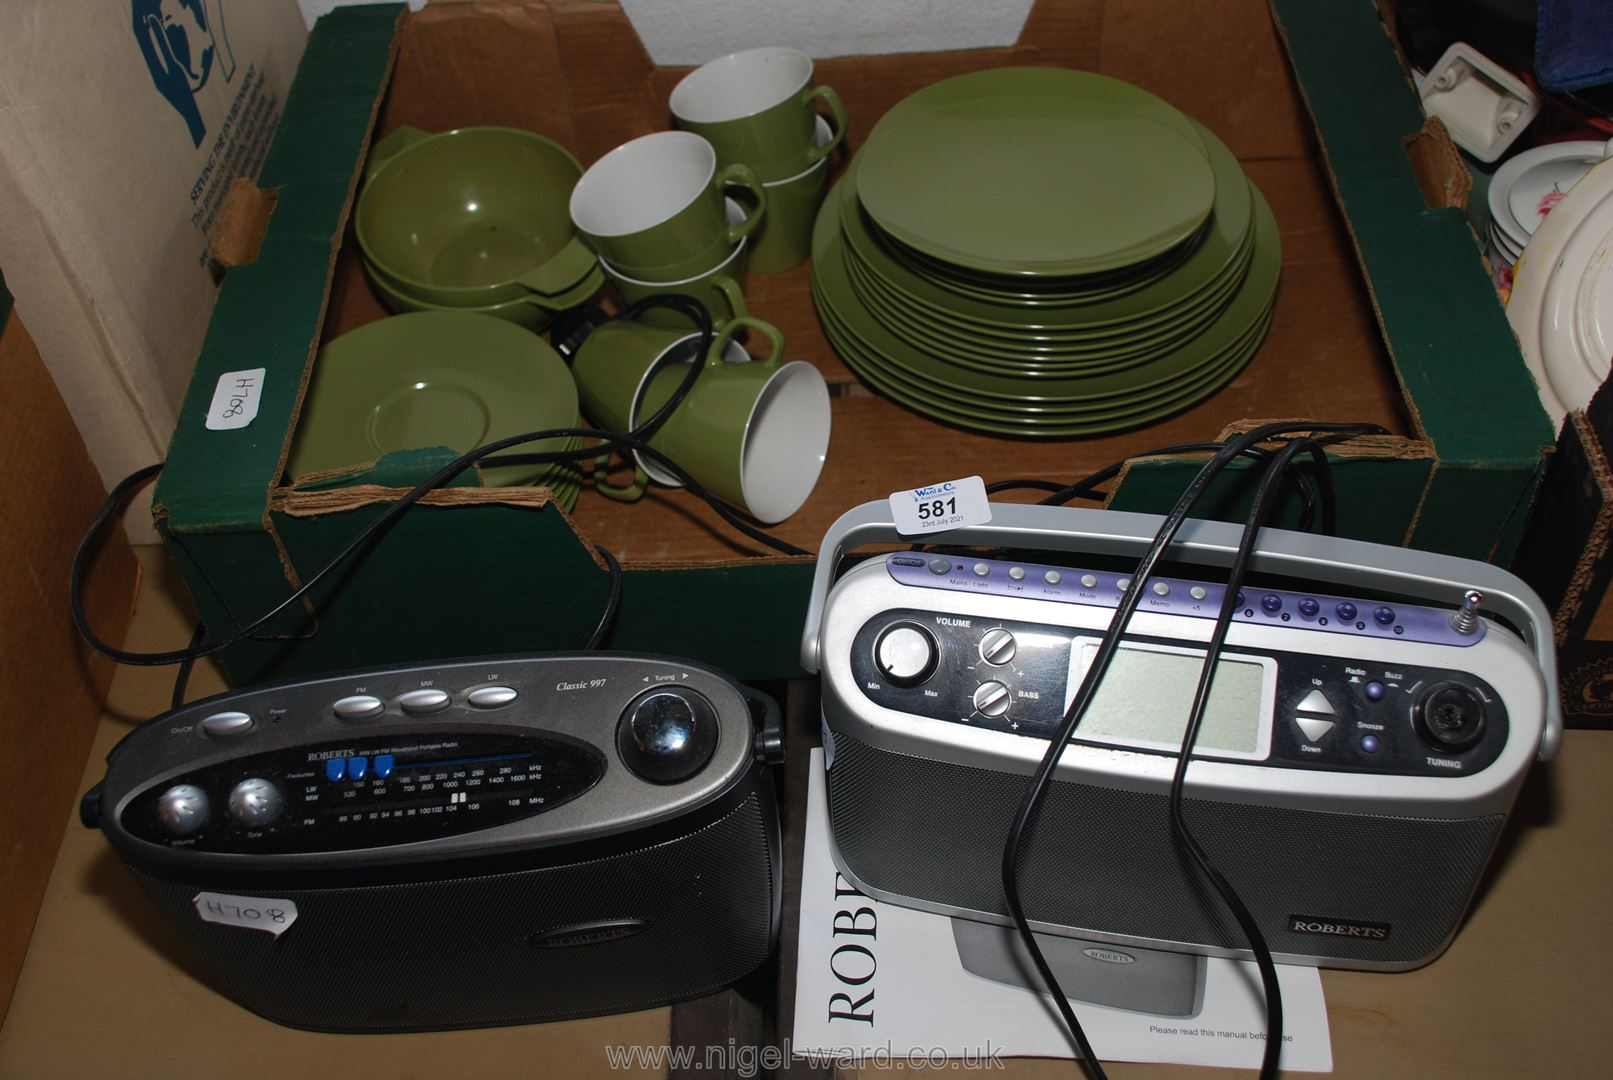 Two Roberts Radios and quantity of Melaware